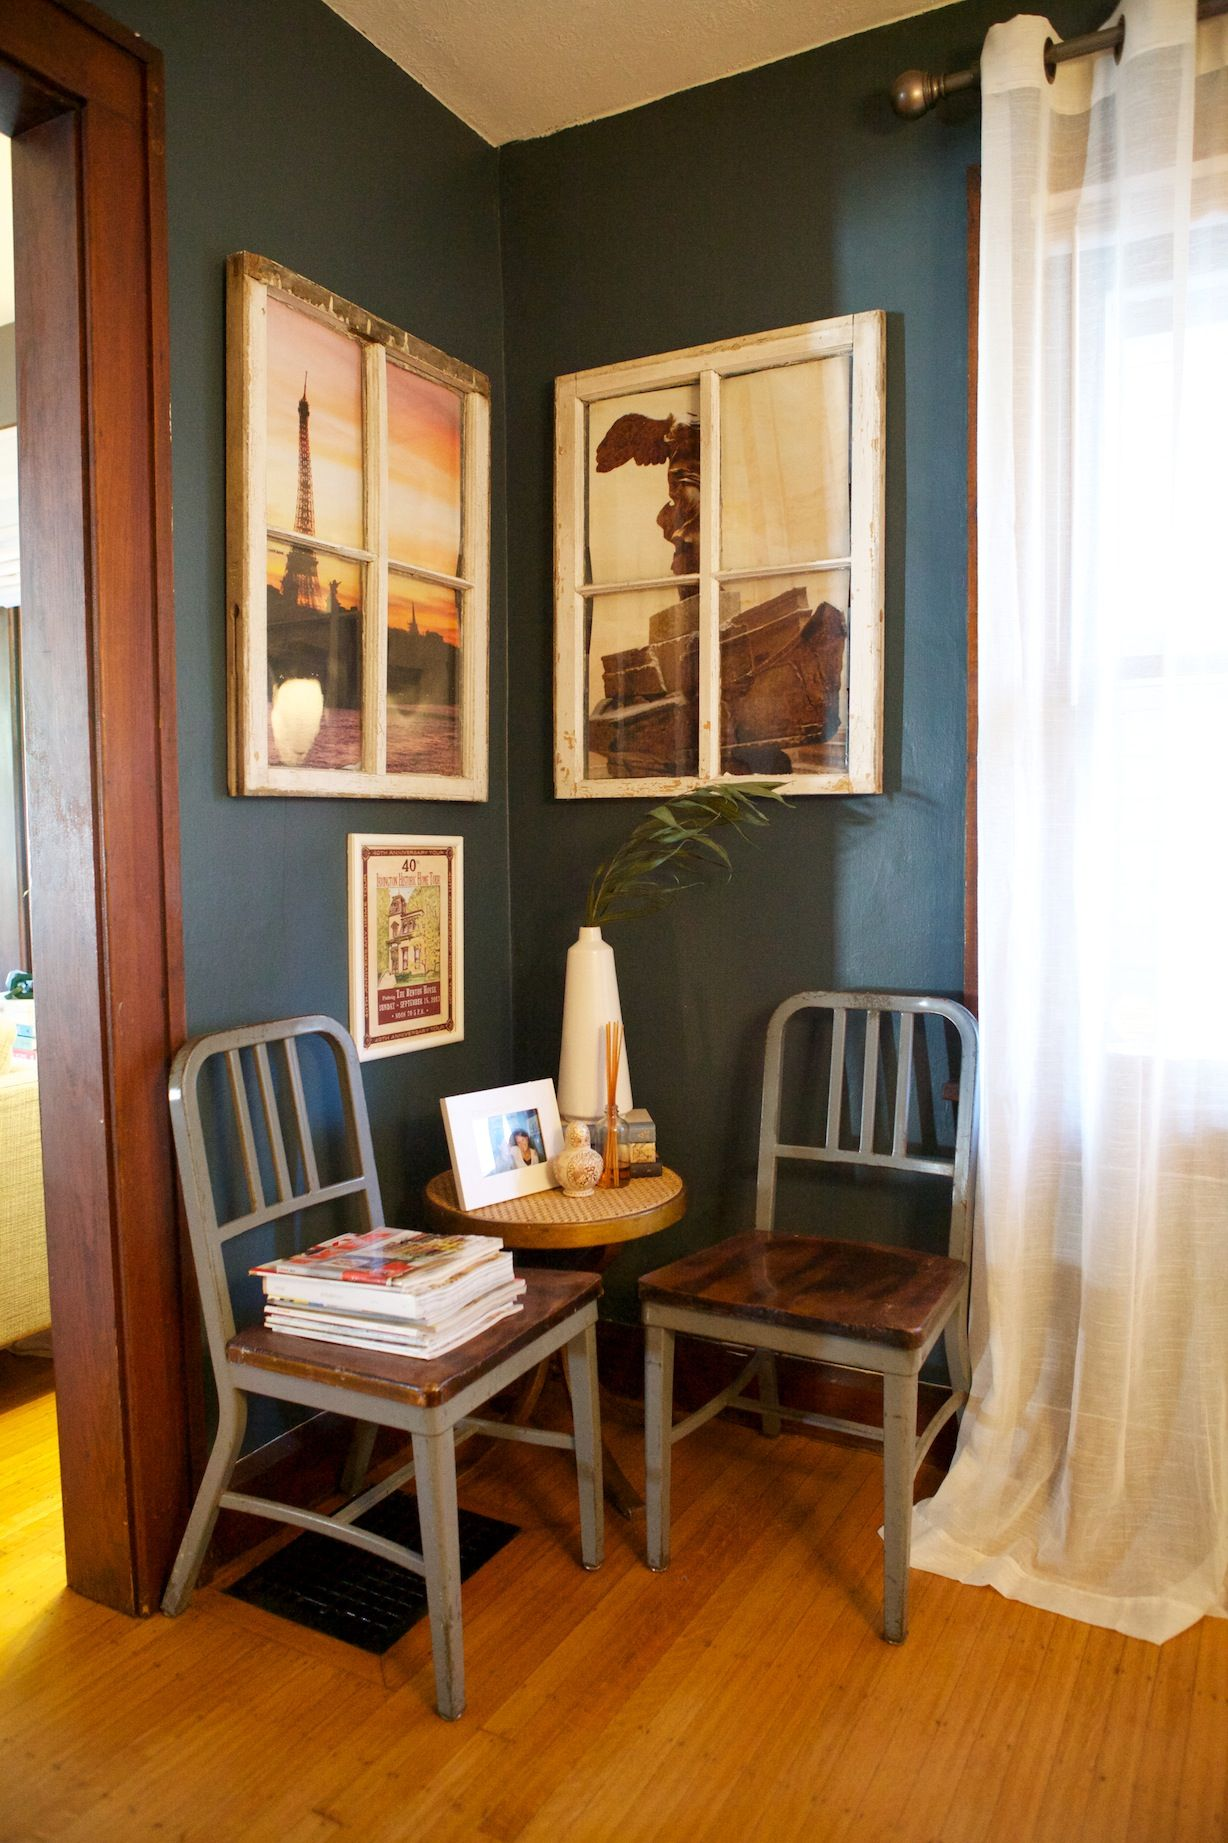 Dining Room Dark Romantic: My Little House: Dark Teal Dining Room With Old Hanging